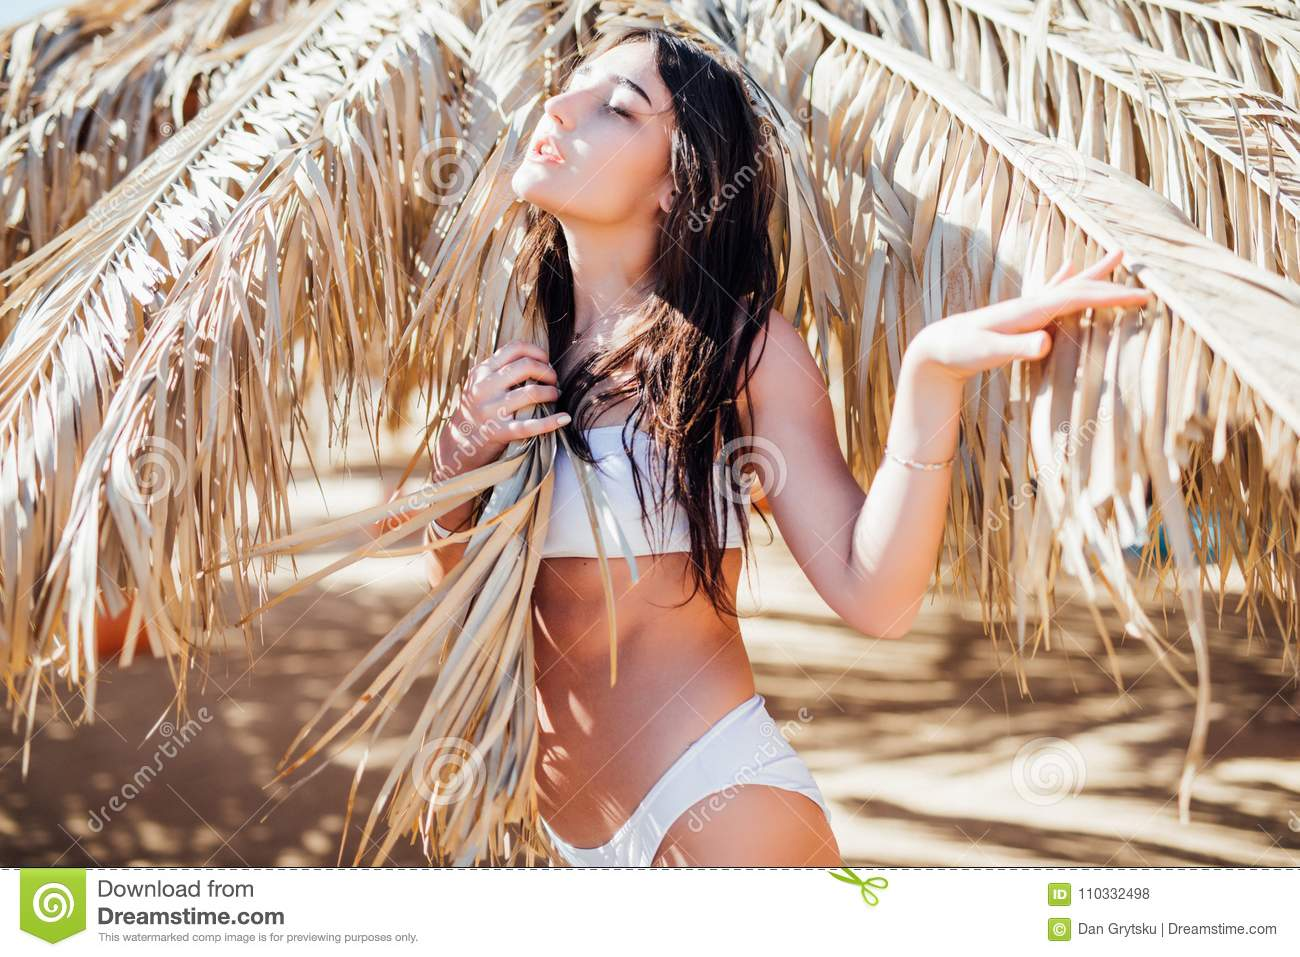 Girl standing under a wooden umbrella on the beach. Young woman resting at beach near the sea. Summer time